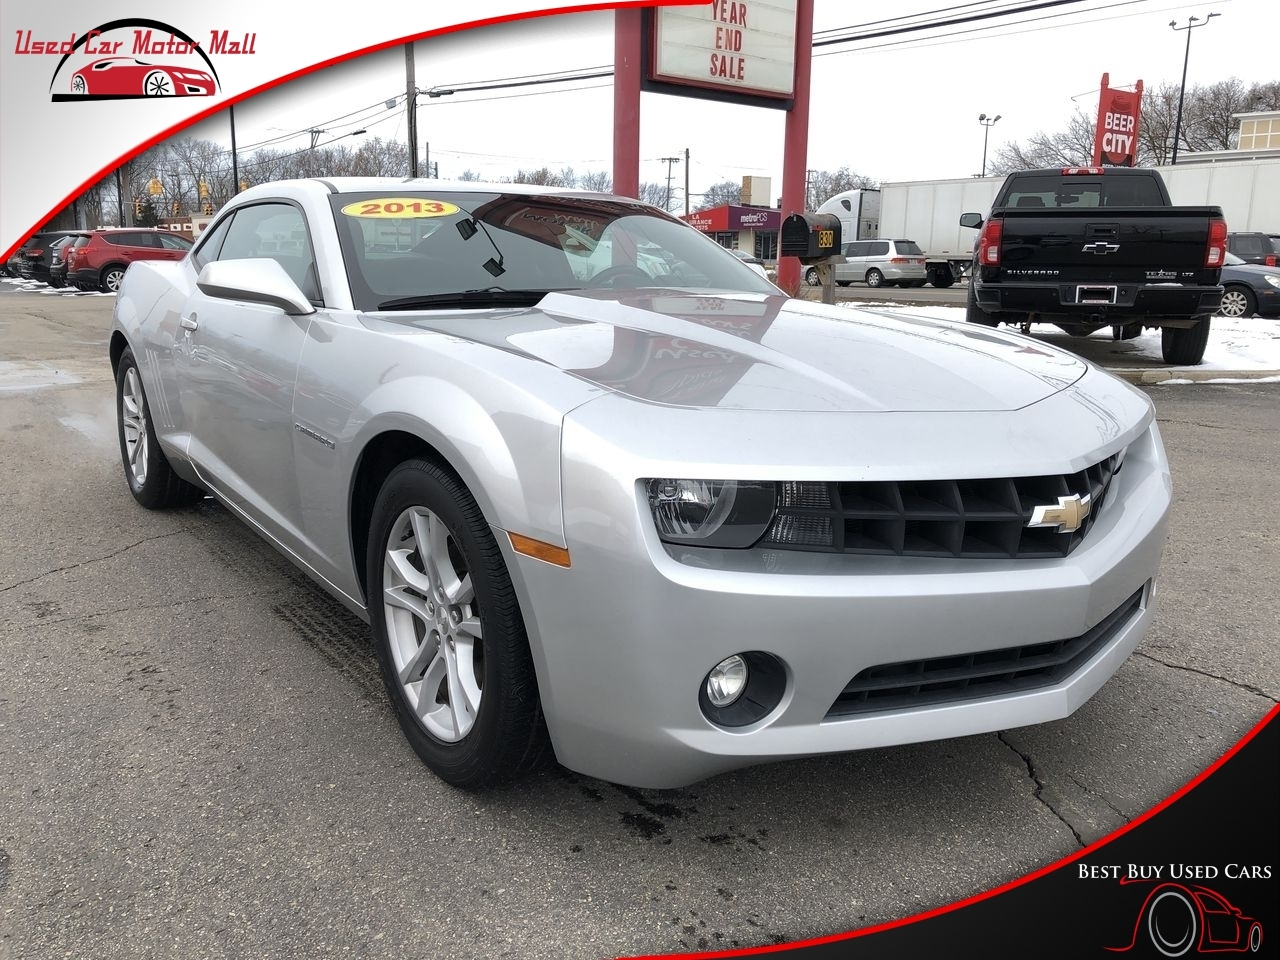 2015 Chevrolet Camaro 1LT Coupe RWD, 304934, Photo 1